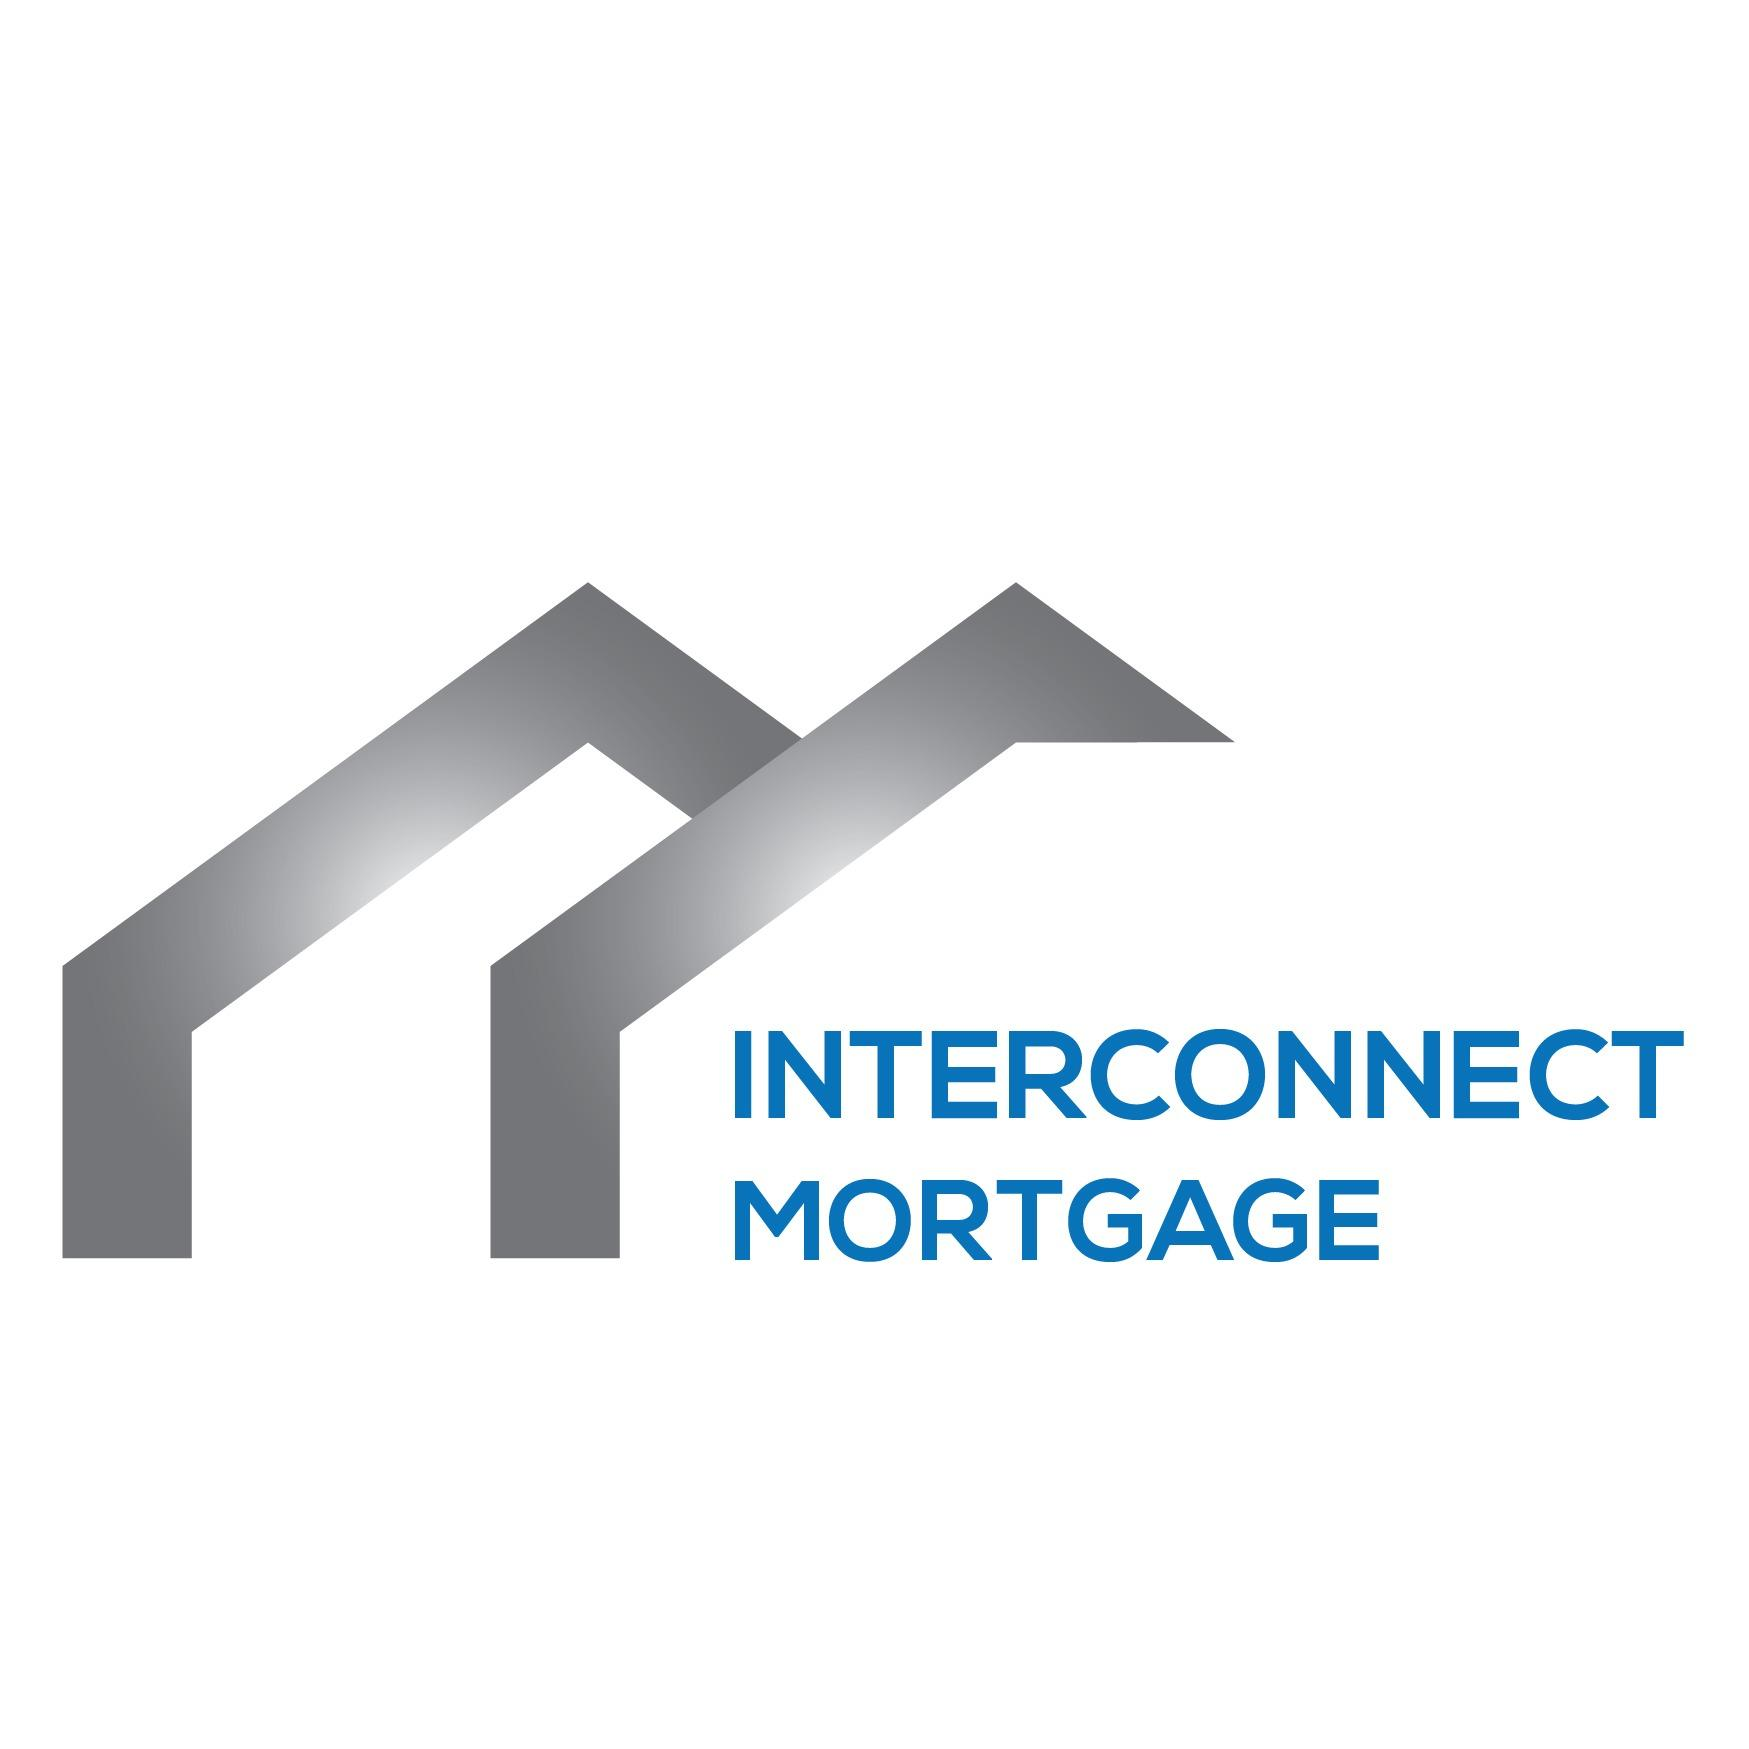 Interconnect Mortgage Inc